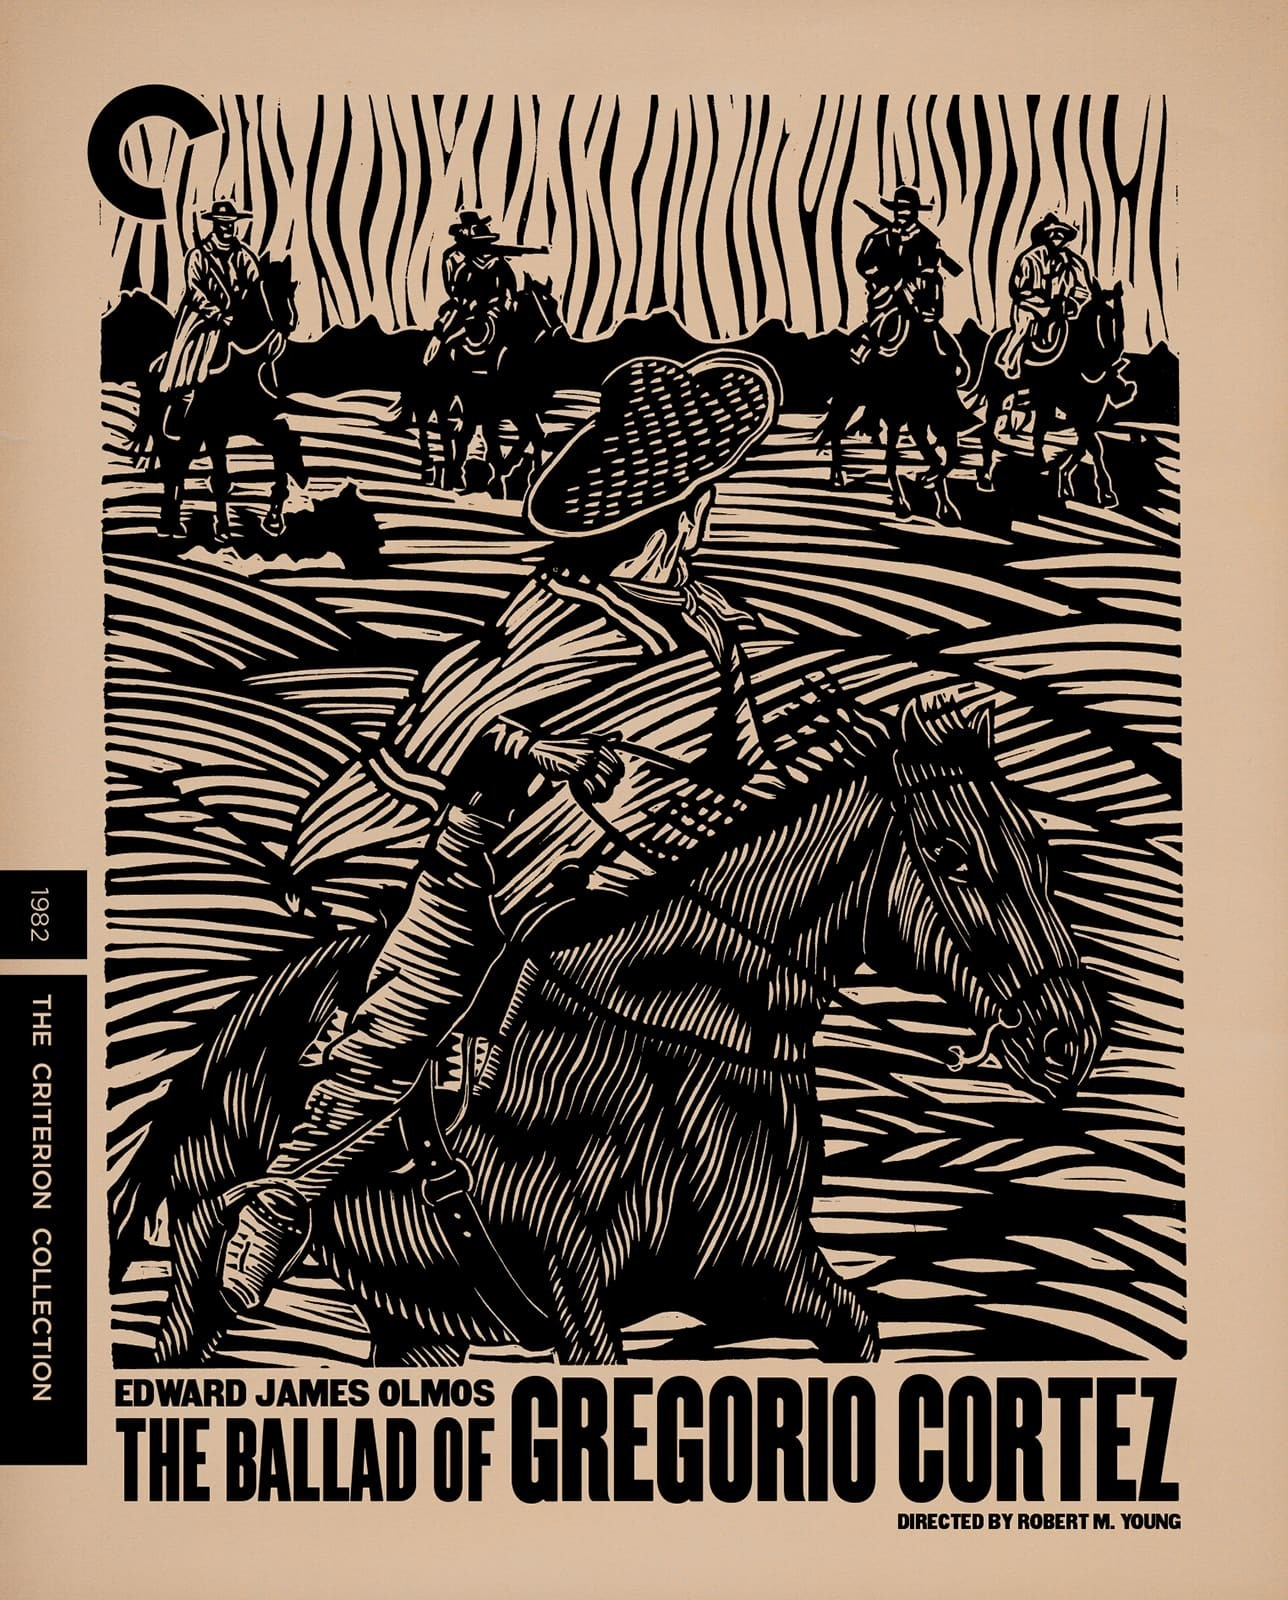 The Ballad of Gregorio Cortez (The Criterion Collection)(1982) Blu-ray